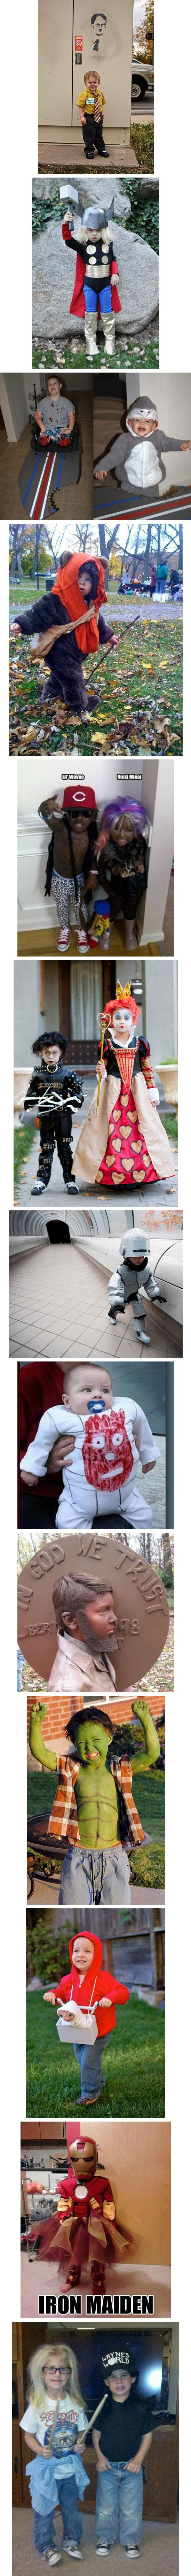 Parenting. You're doing it right.